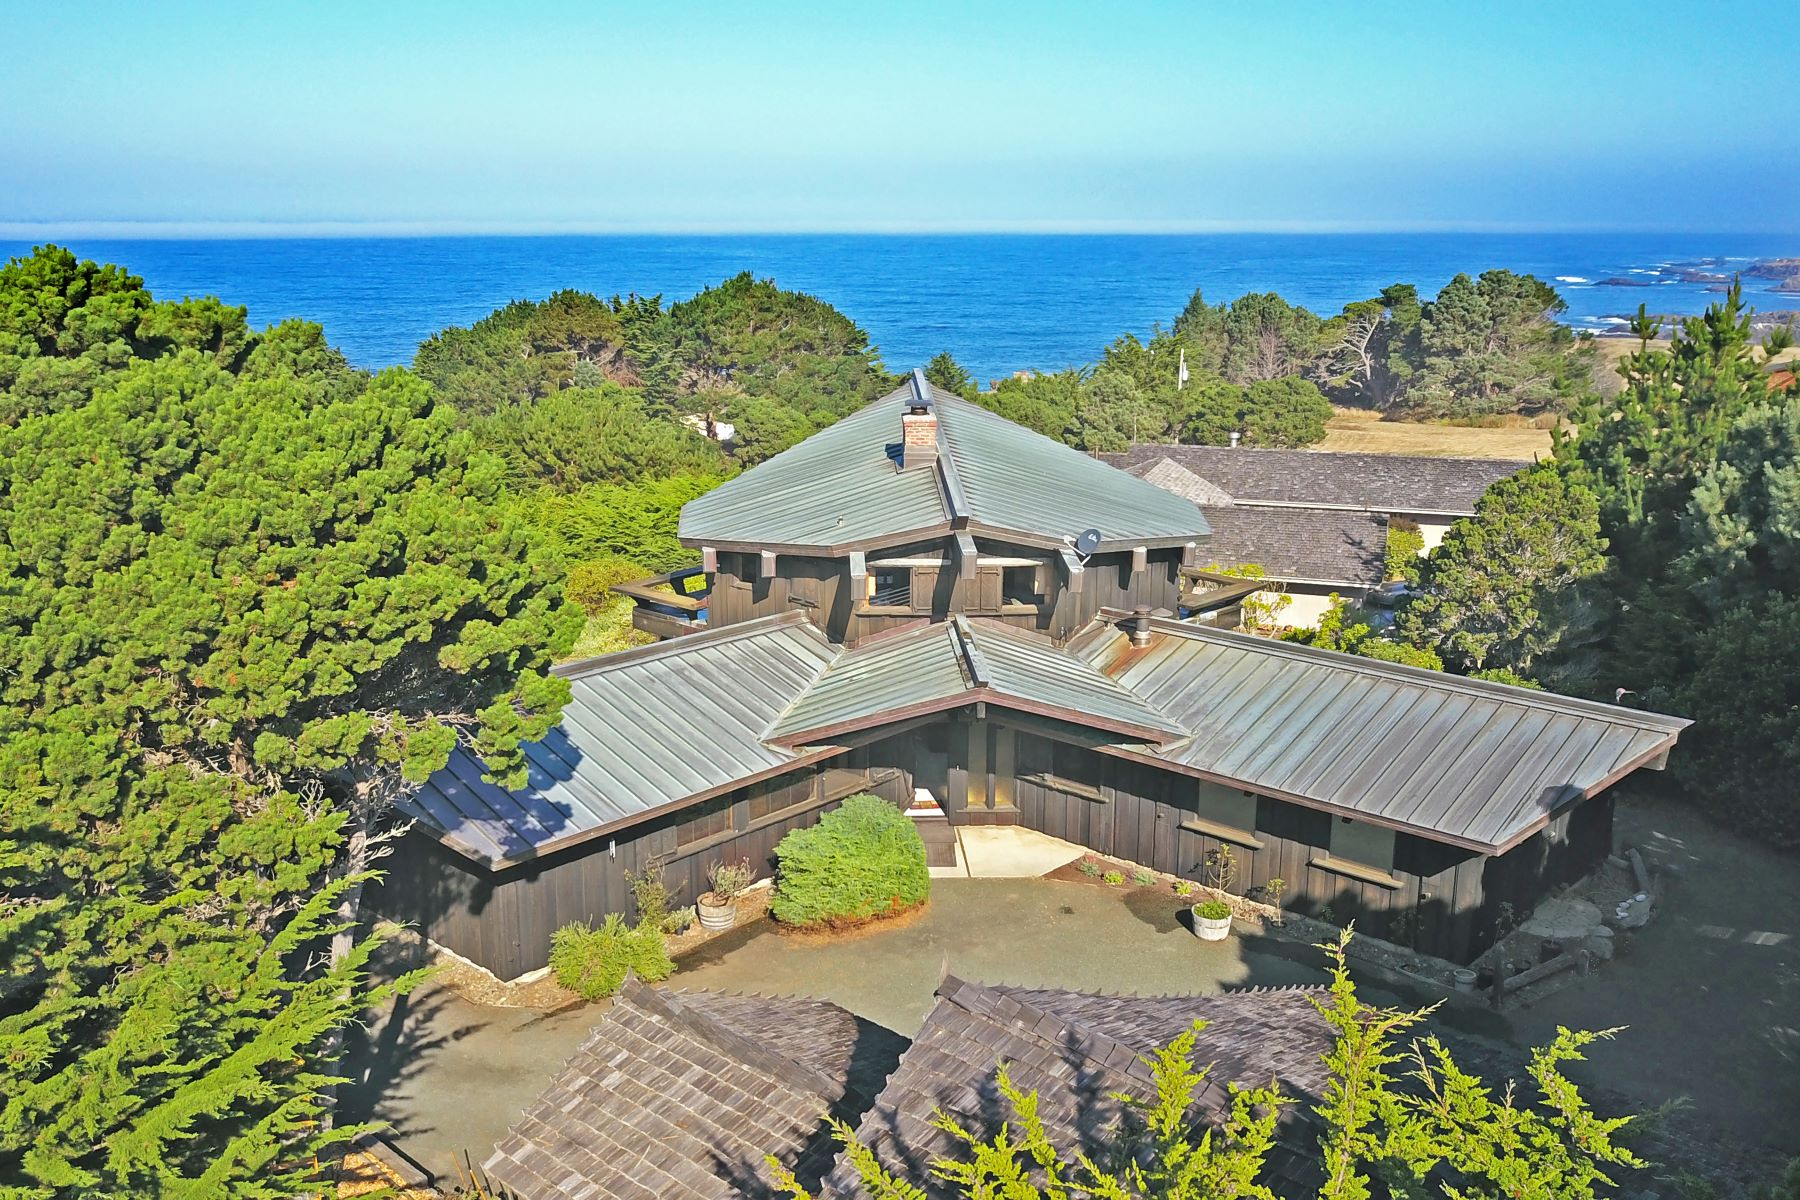 Single Family Home for Sale at Ocean View Timbers 45621 Cypress Drive, Mendocino, California, 95460 United States